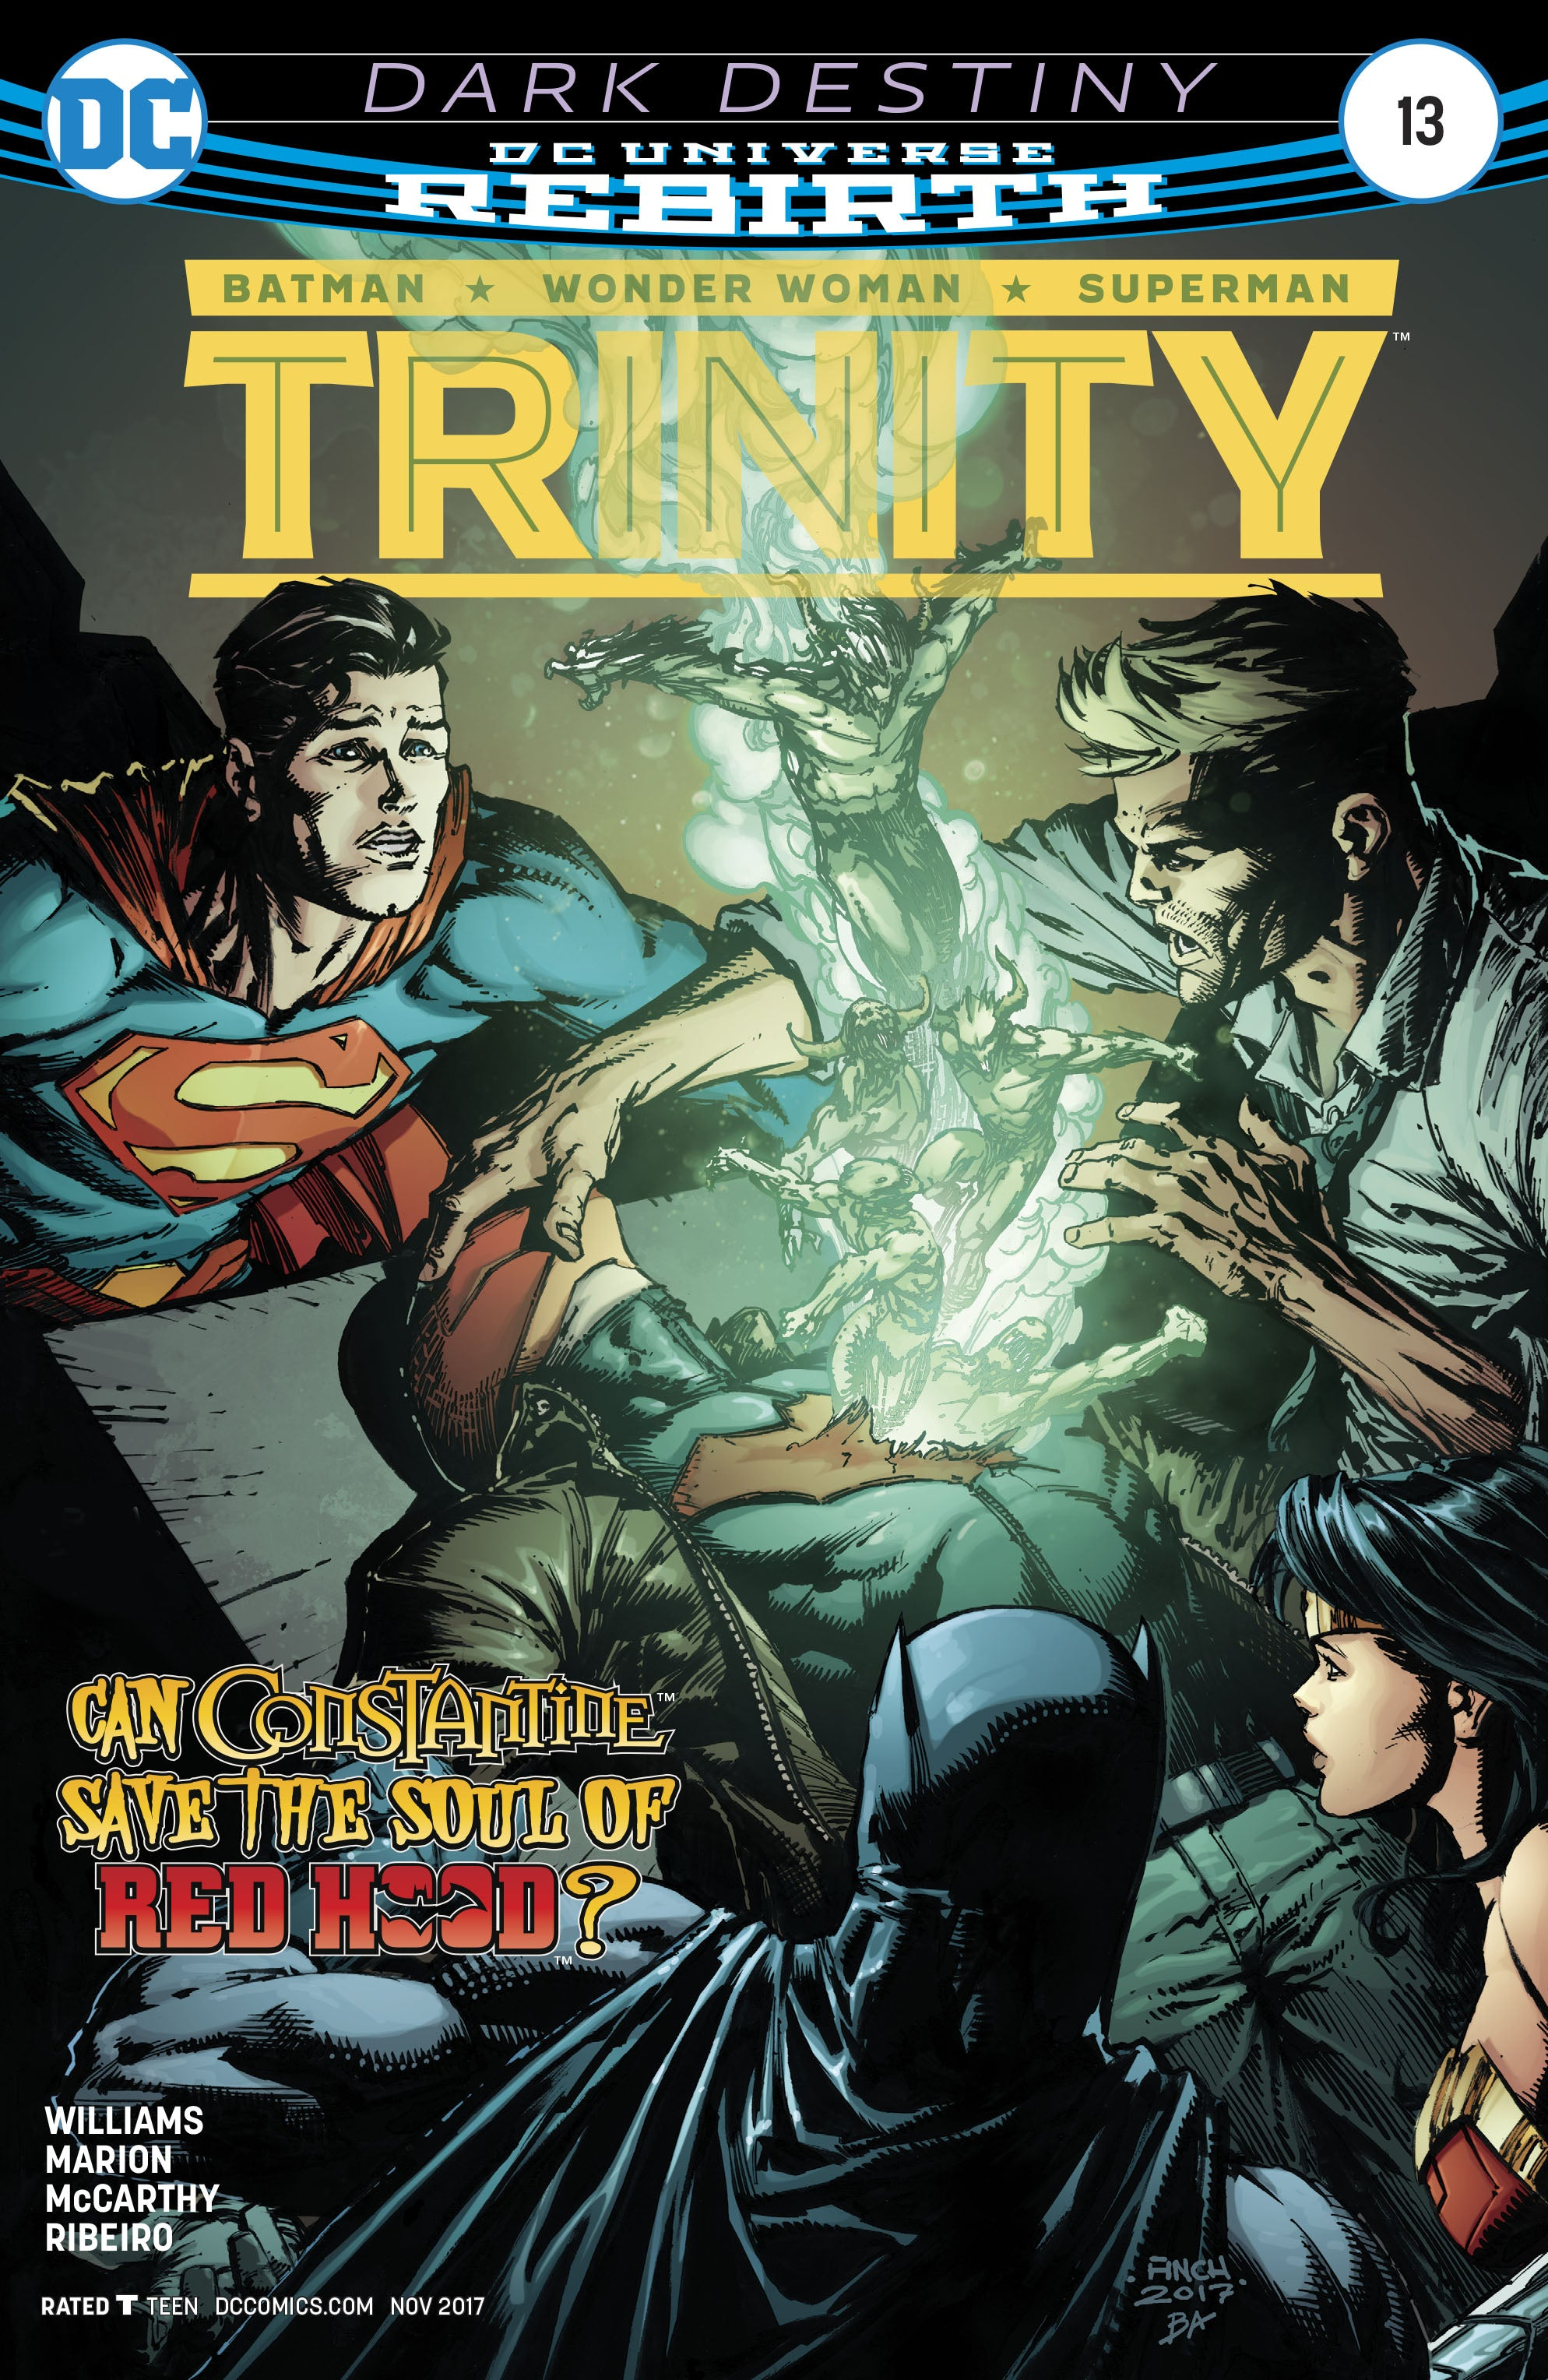 TRINITY #13 | Game Master's Emporium (The New GME)